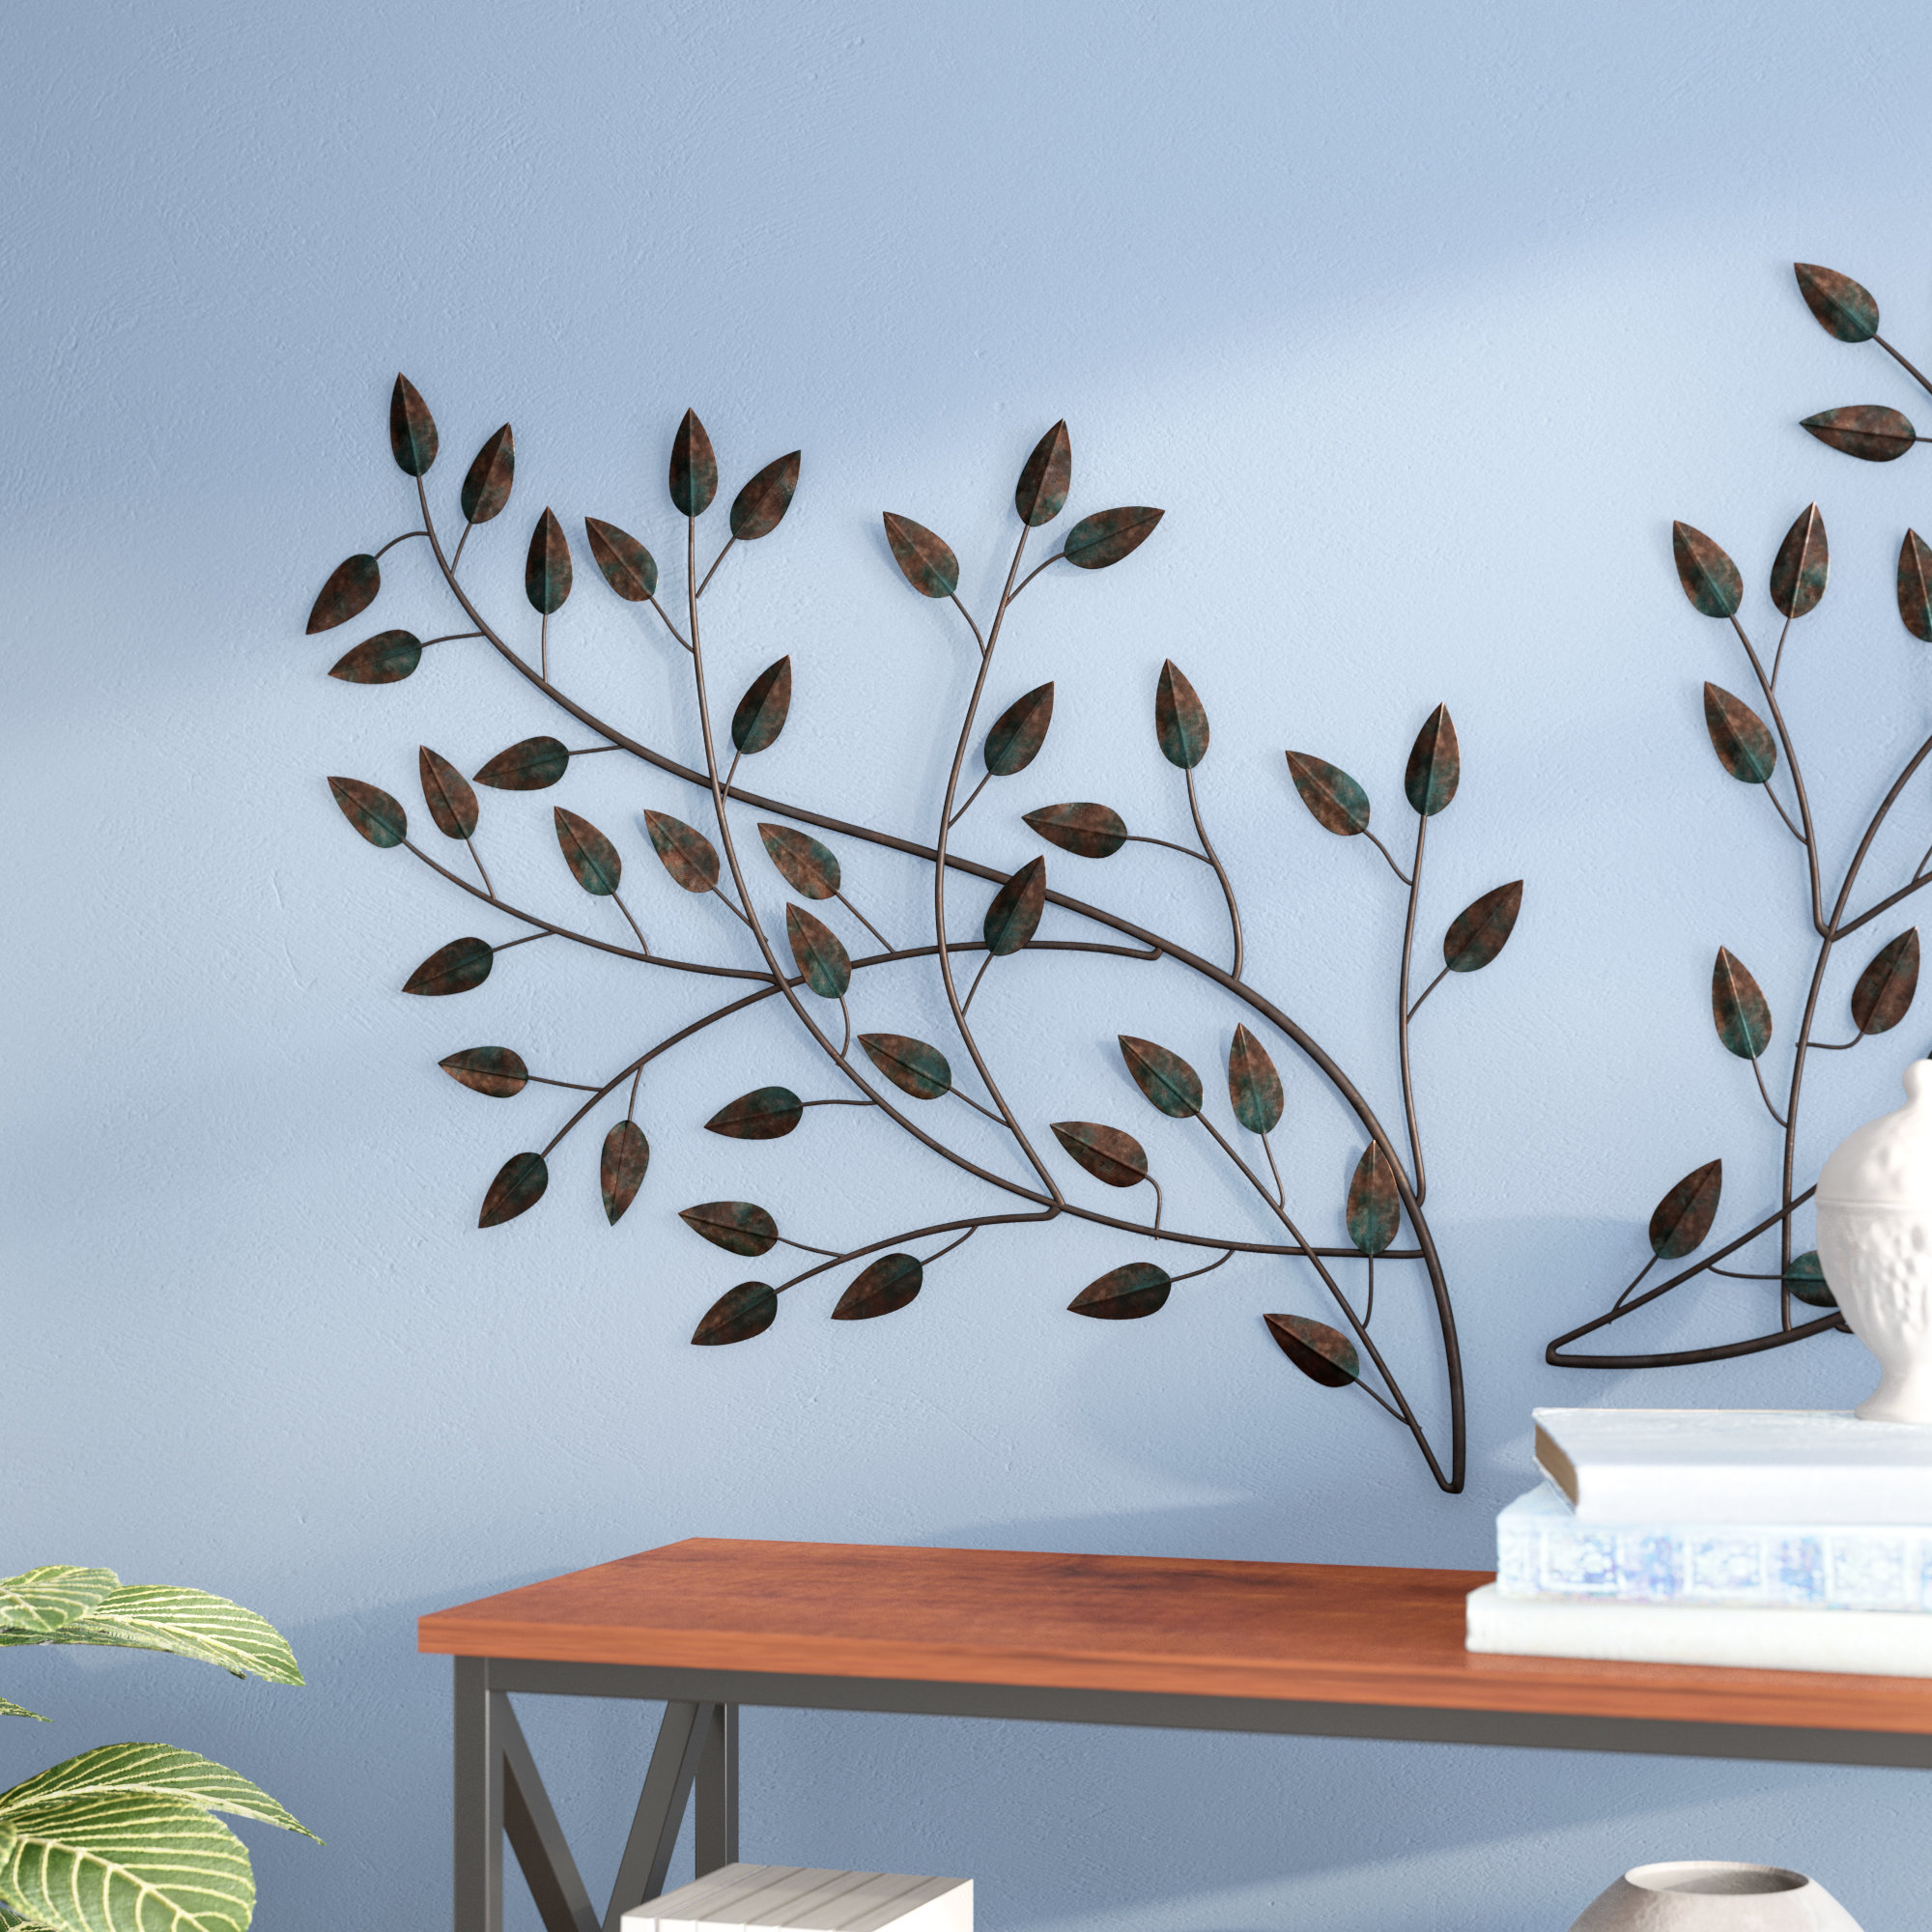 Blowing Leaves Wall Décor With Regard To Blowing Leaves Wall Decor (View 4 of 30)